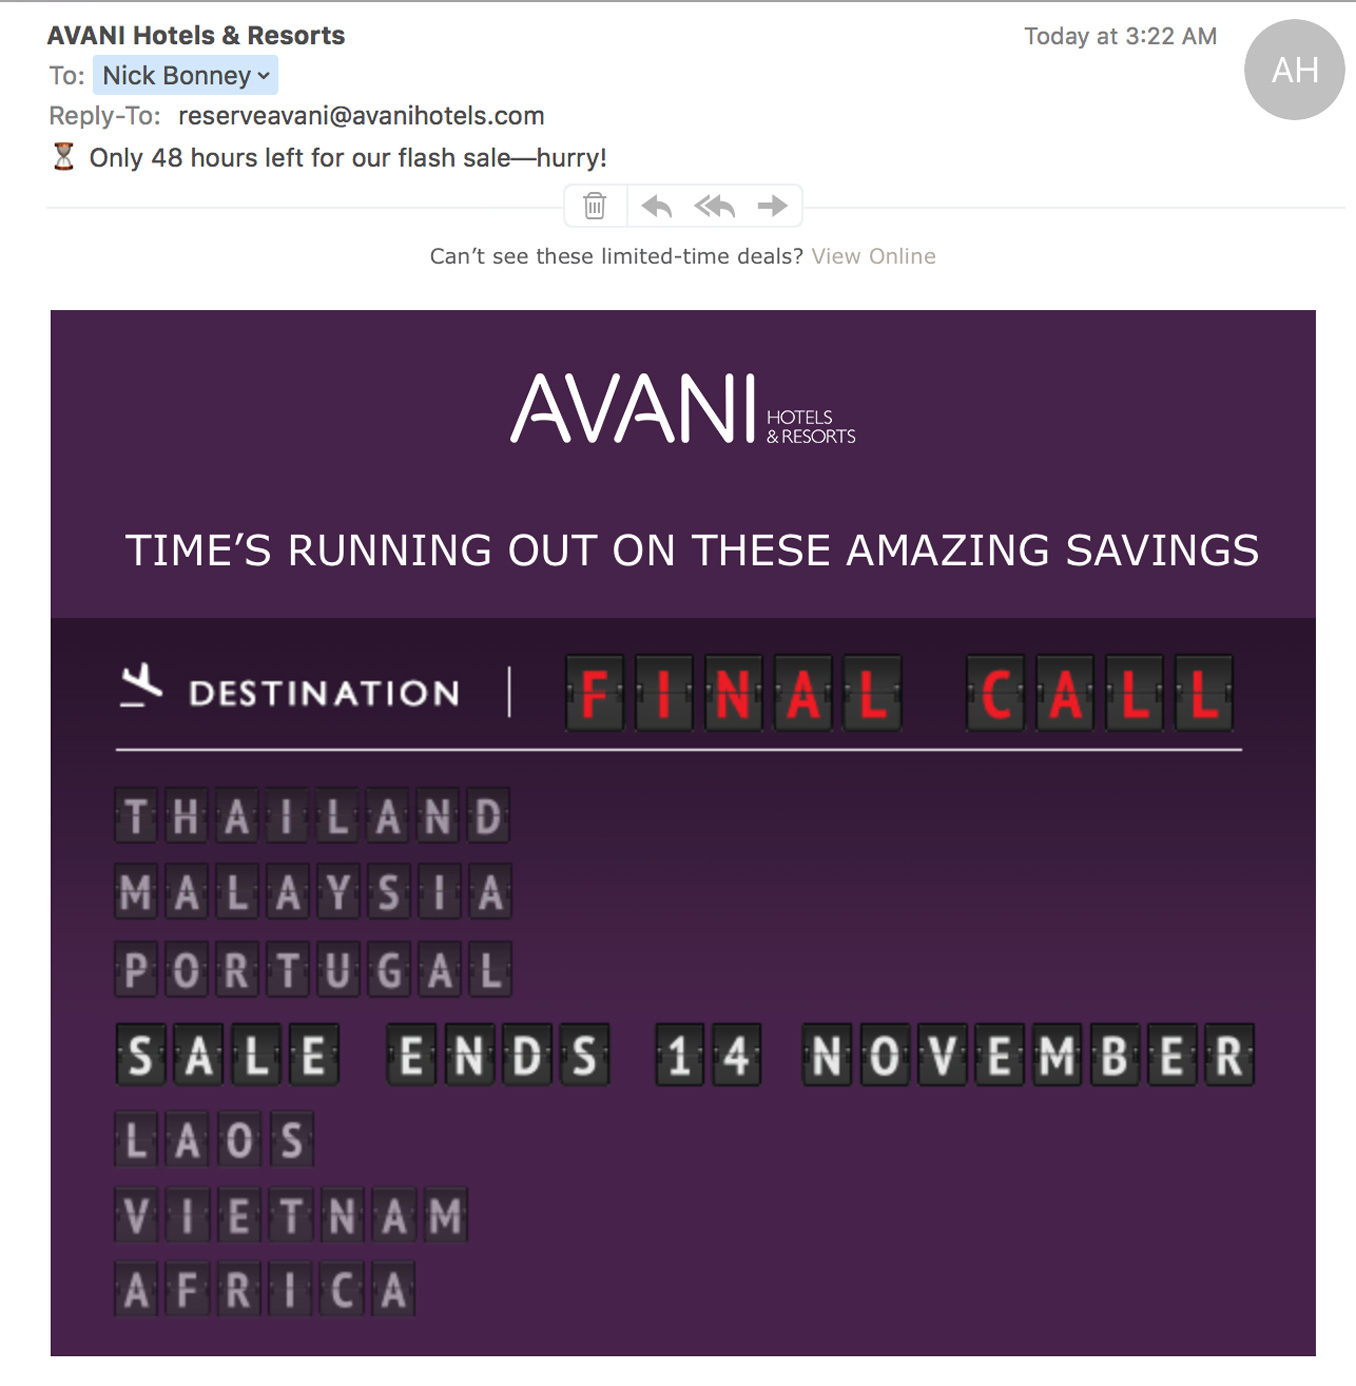 EMAIL: A creative approach and strong CTA to their 'special offer' campaigns